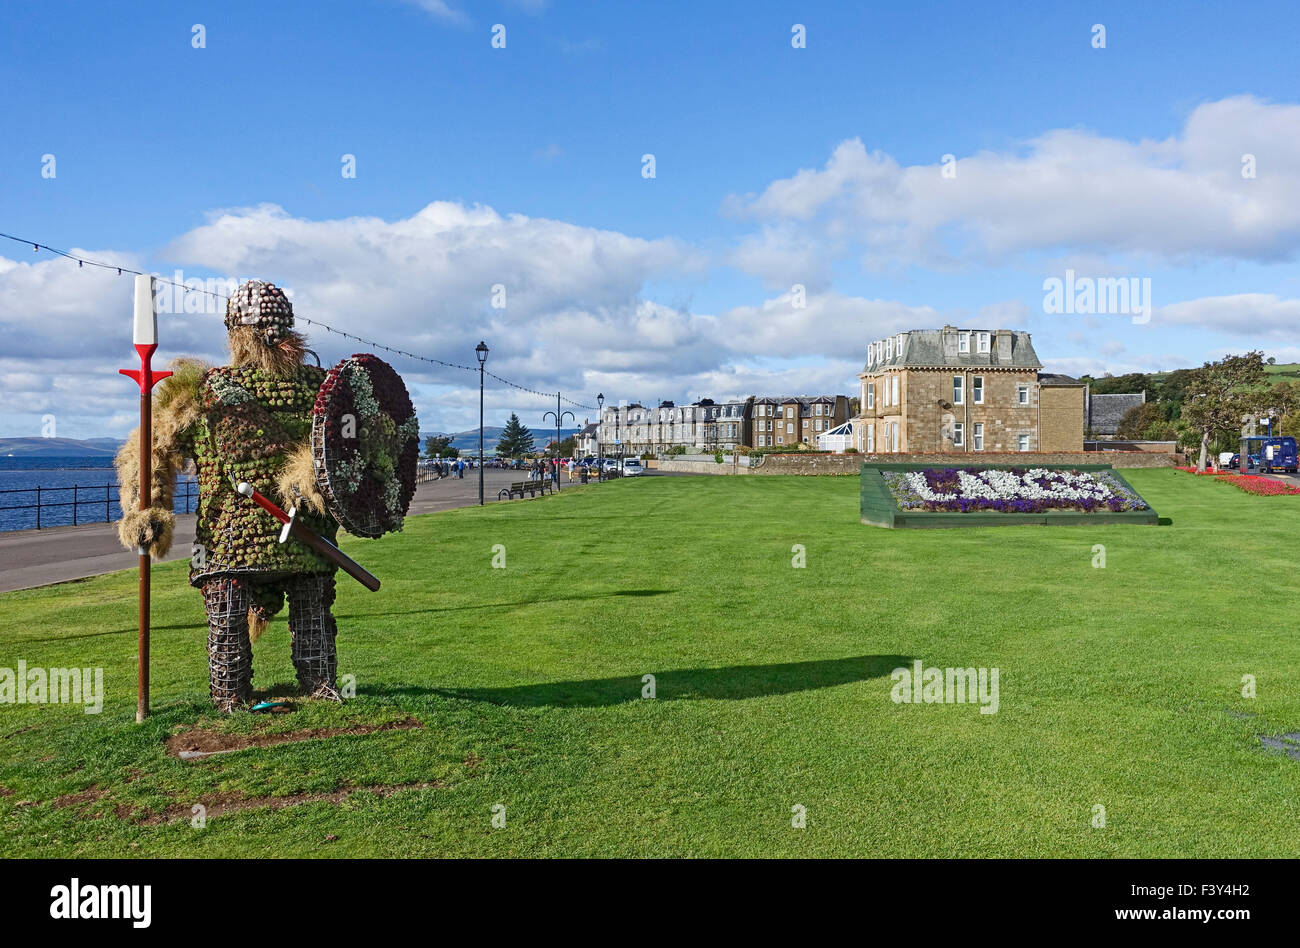 Statue of 'Magnus the Viking' made from flowers standing at the seafront in Largs North Ayrshire Scotland - Stock Image